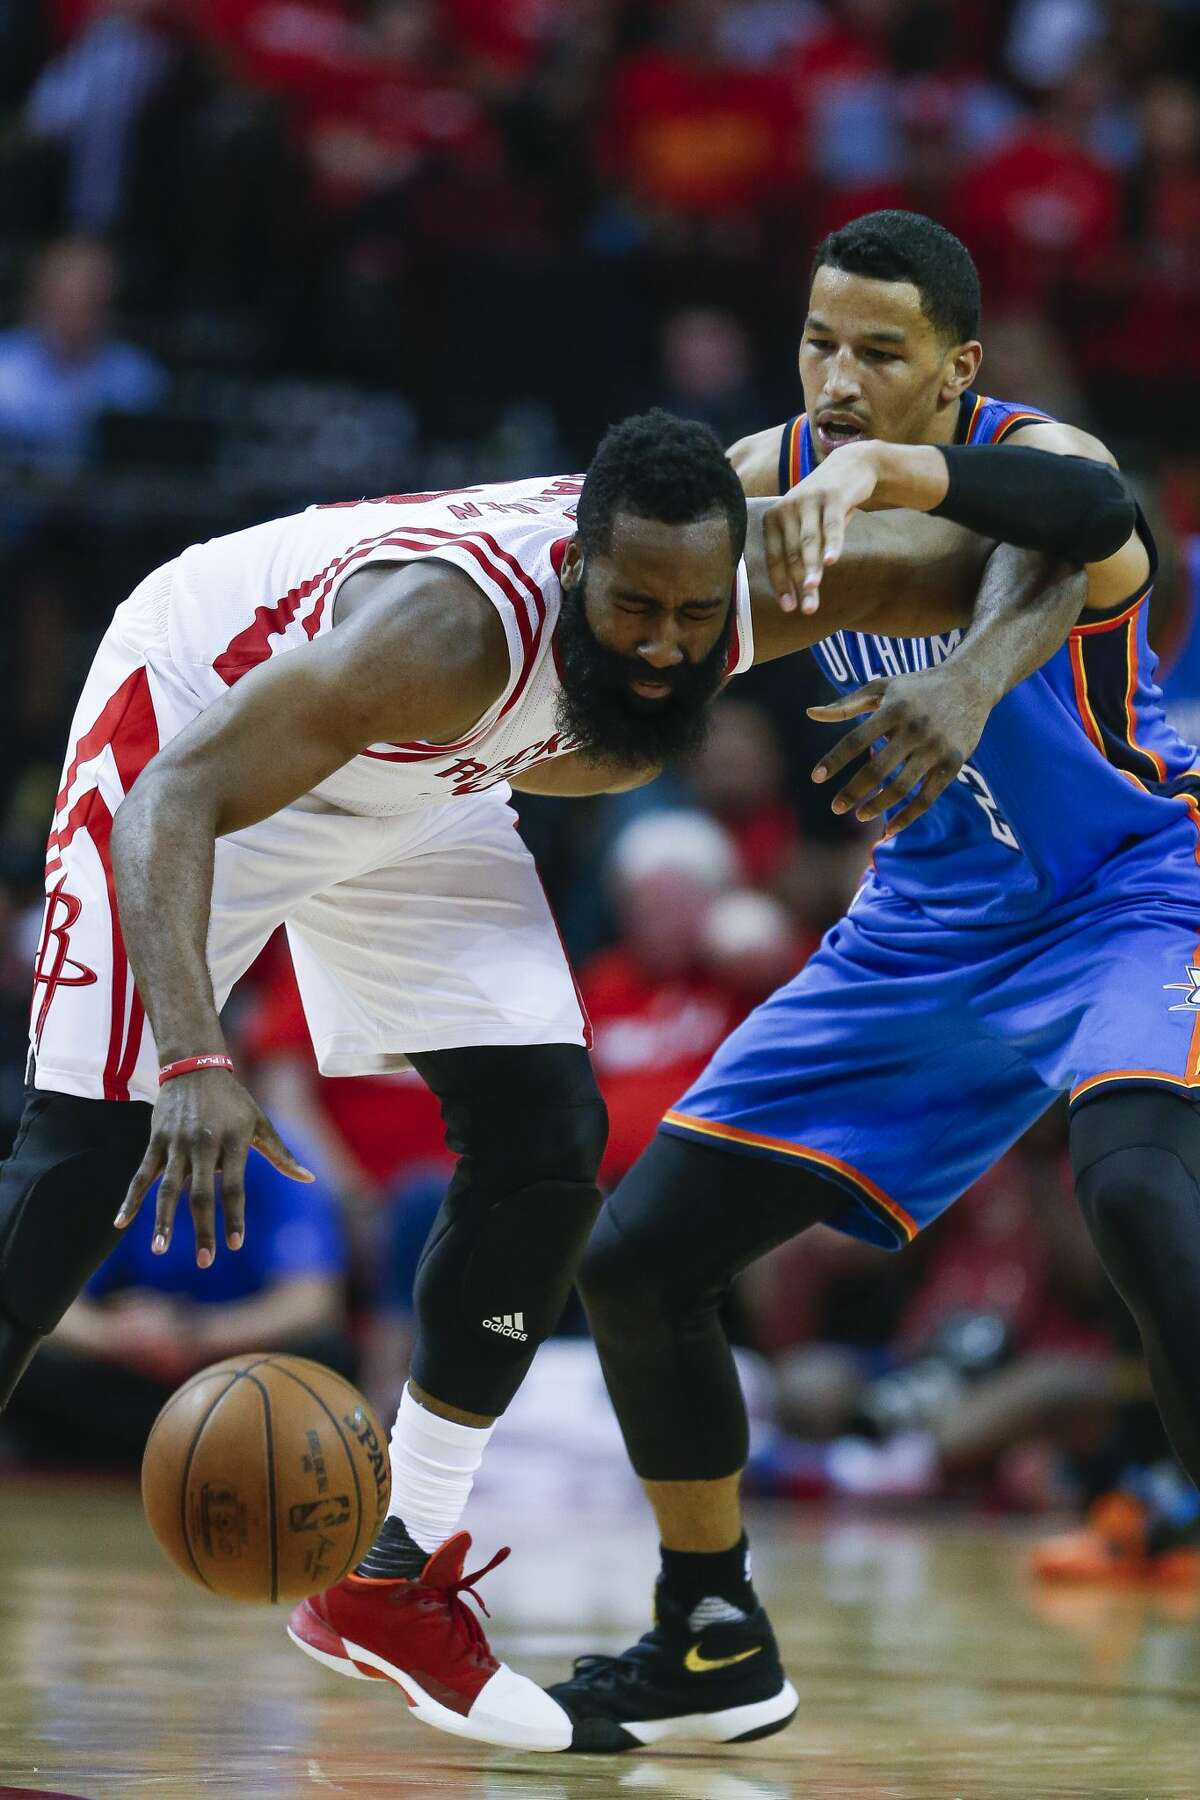 Houston Rockets guard James Harden (13) reacts as he gets tangled up with Oklahoma City Thunder forward Andre Roberson (21) as the Houston Rockets beat the Oklahoma City Thunder 115-111 in Game 2 of the first-round playoff series Wednesday, April 19, 2017 in Houston at the Toyota Center. ( Michael Ciaglo / Houston Chronicle)